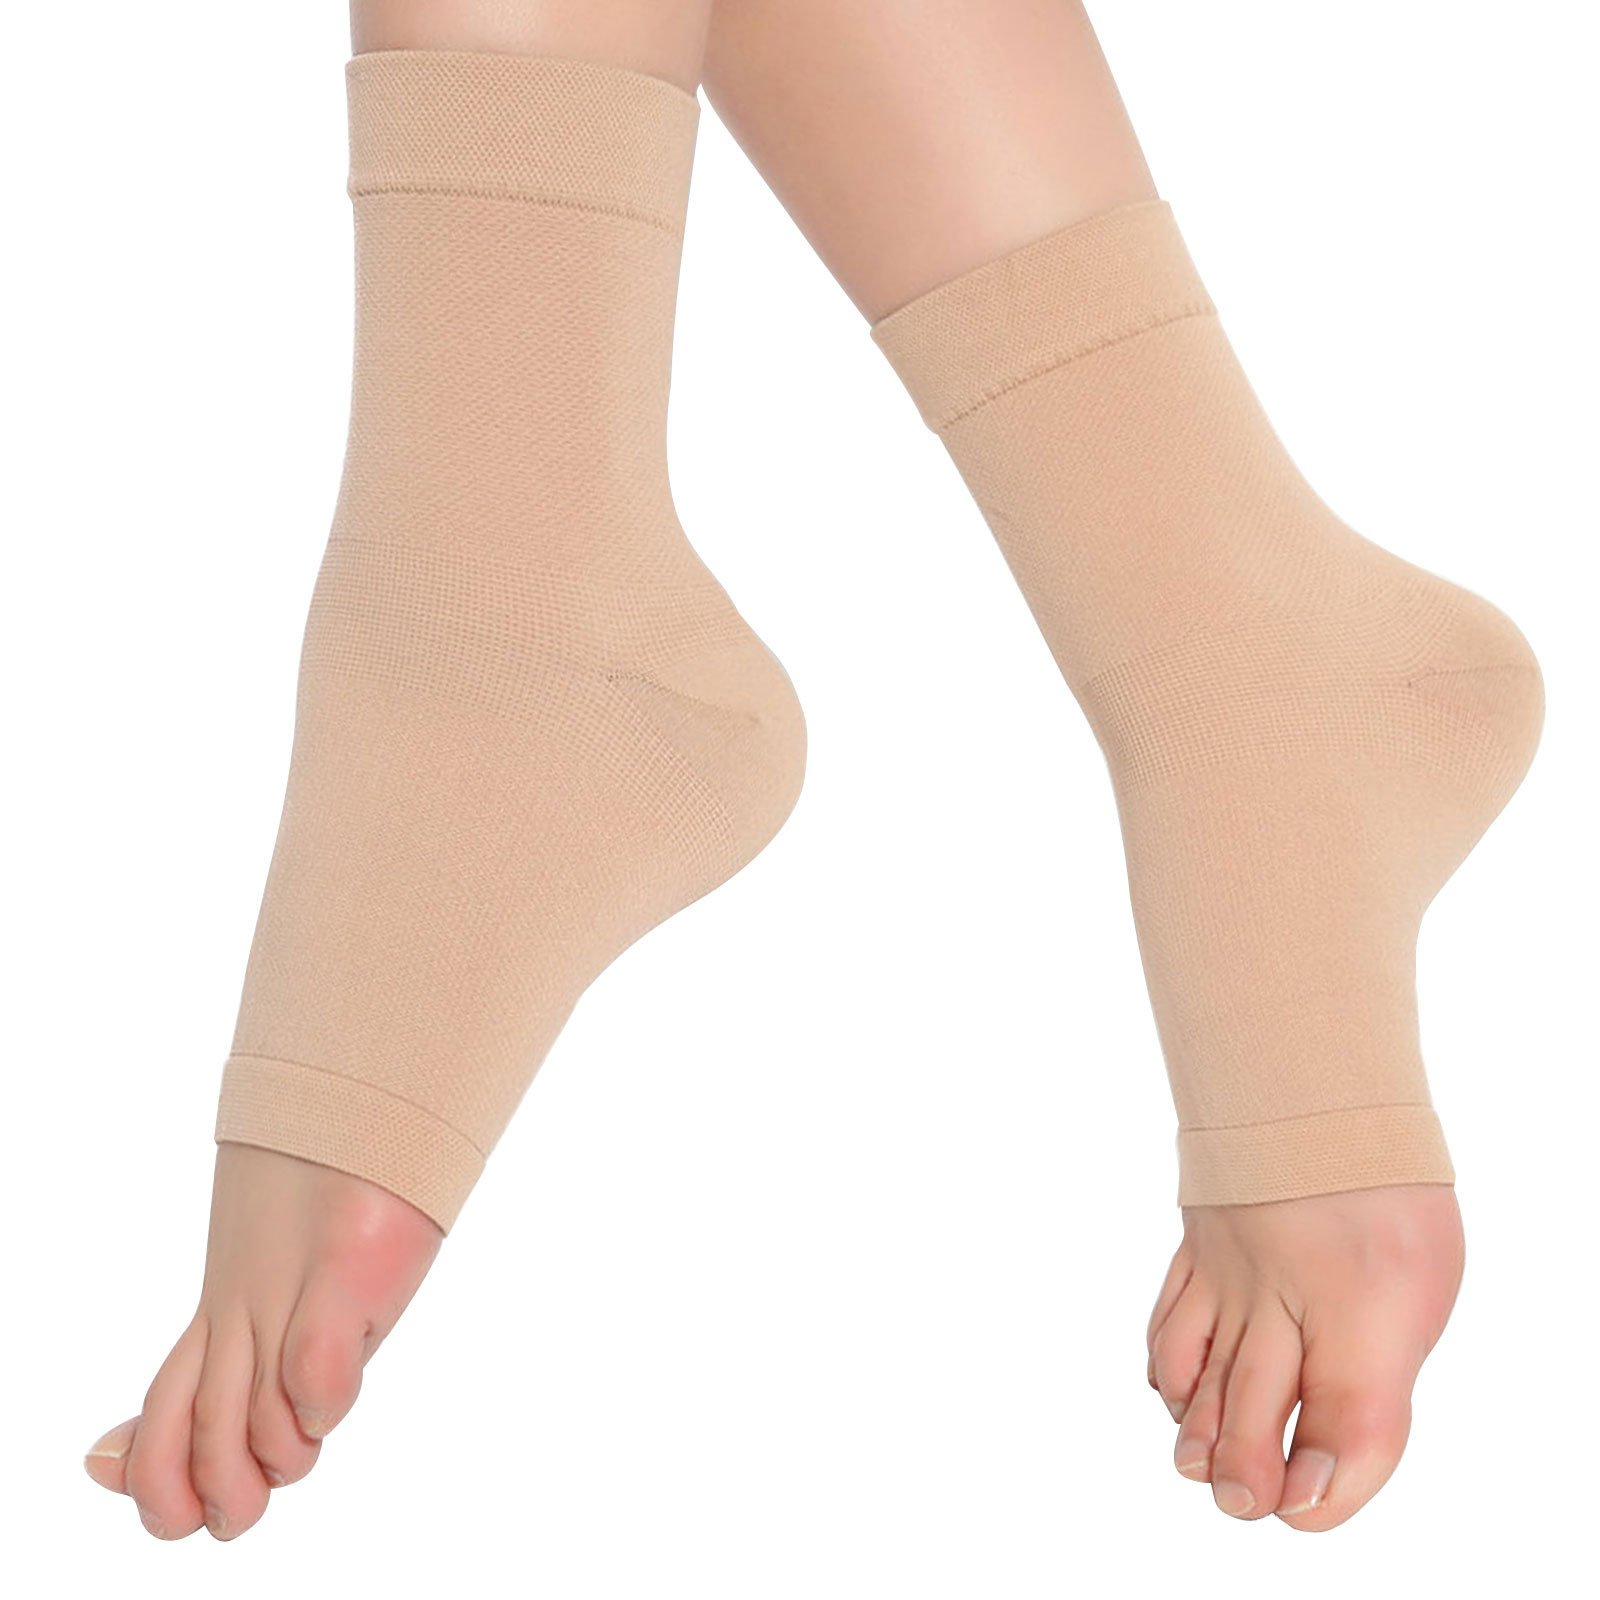 SPOTBRACE Medical Compression Breathable Ankle